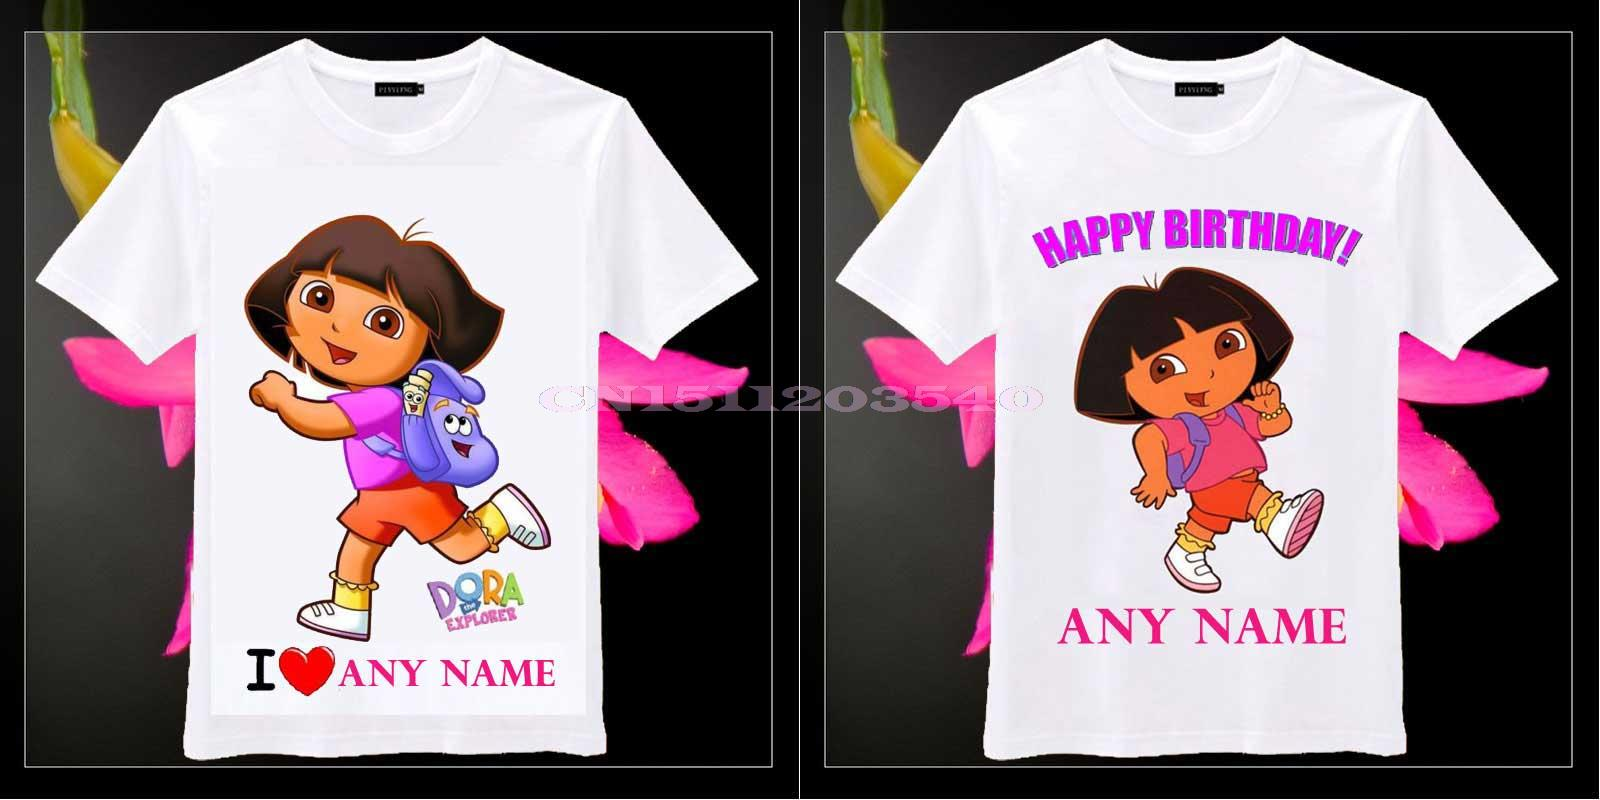 Personalized Toddler Birthday T Shirts